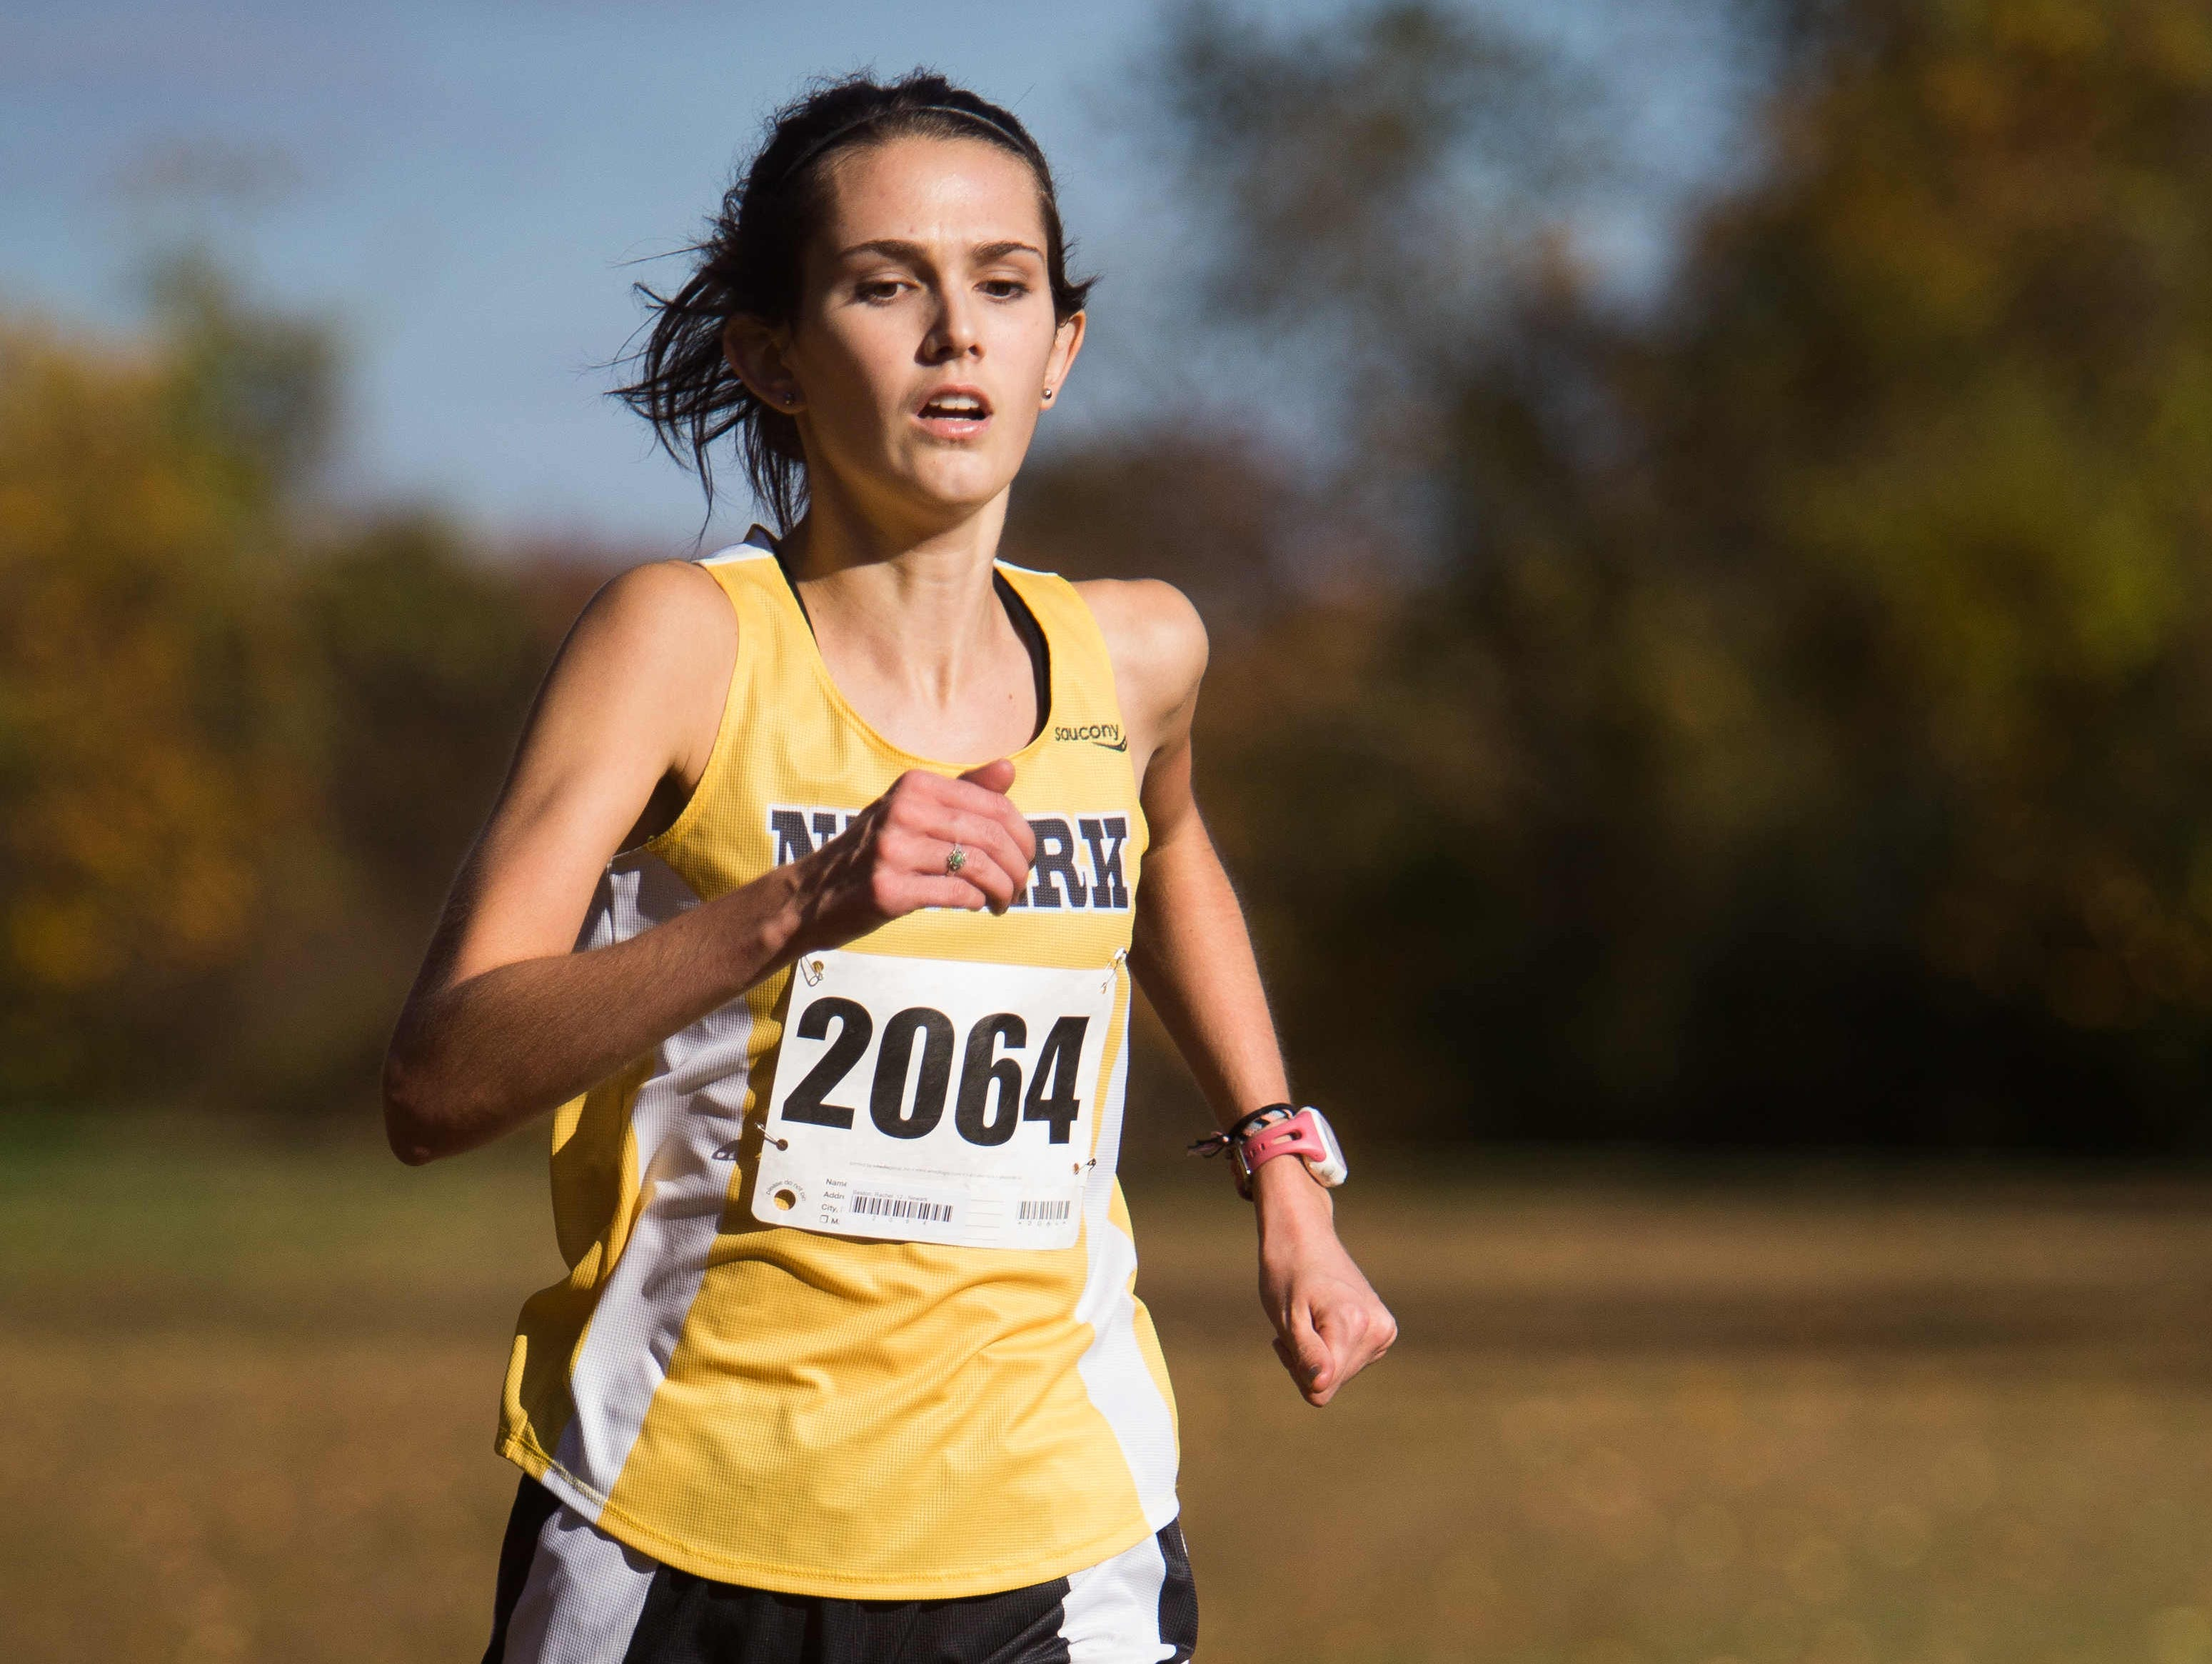 Newark senior Rachel Beston crosses the finish line in first place with a time of 18:26 in the Blue Hen Conference Championship at White Clay Creek State Park in Newark.